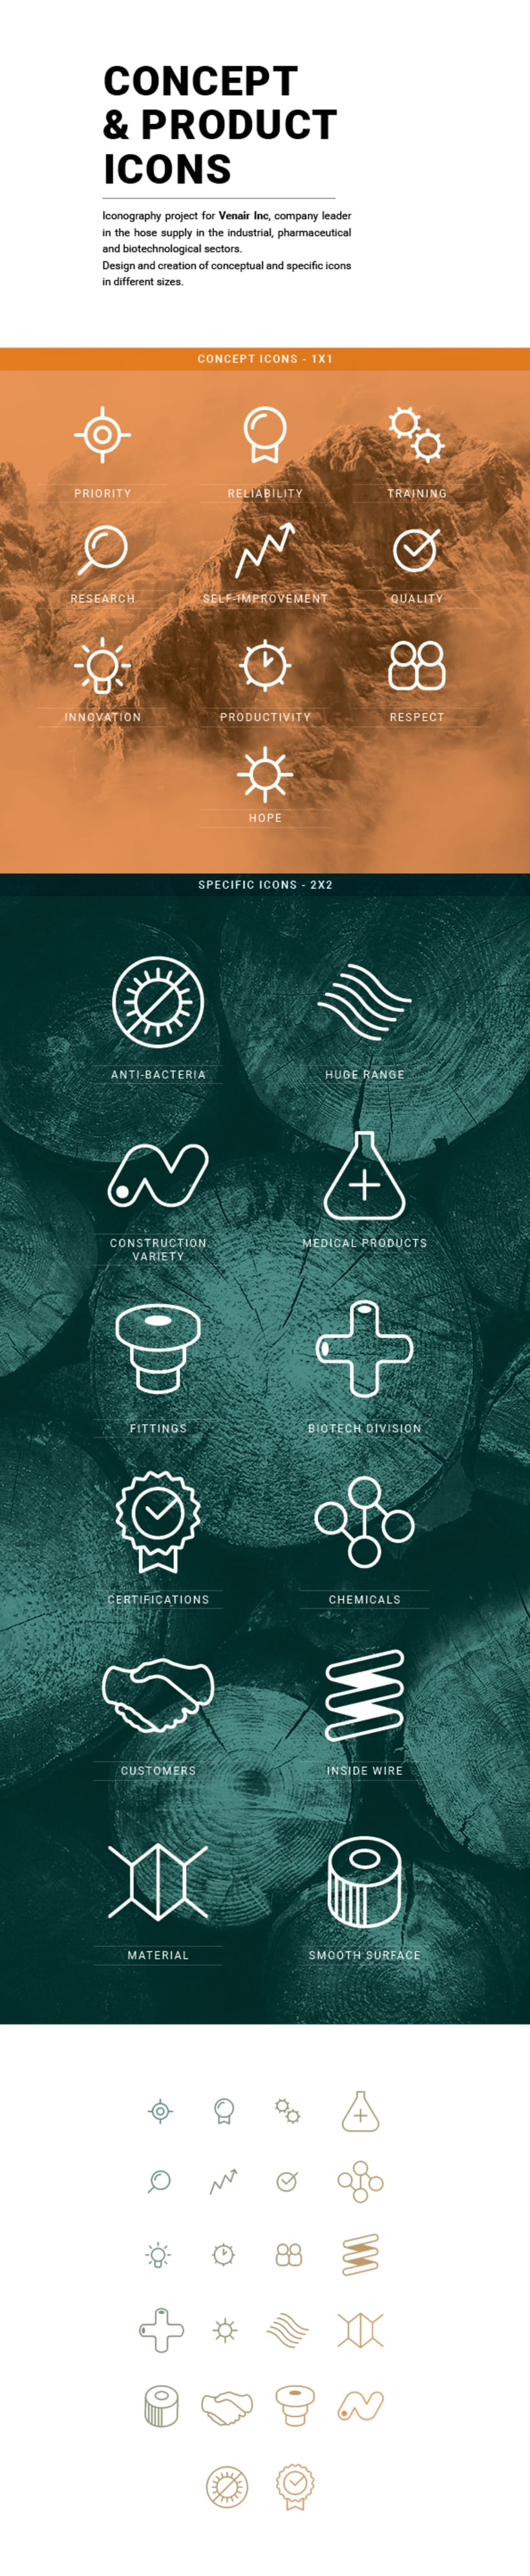 Concept & Product Icons 0